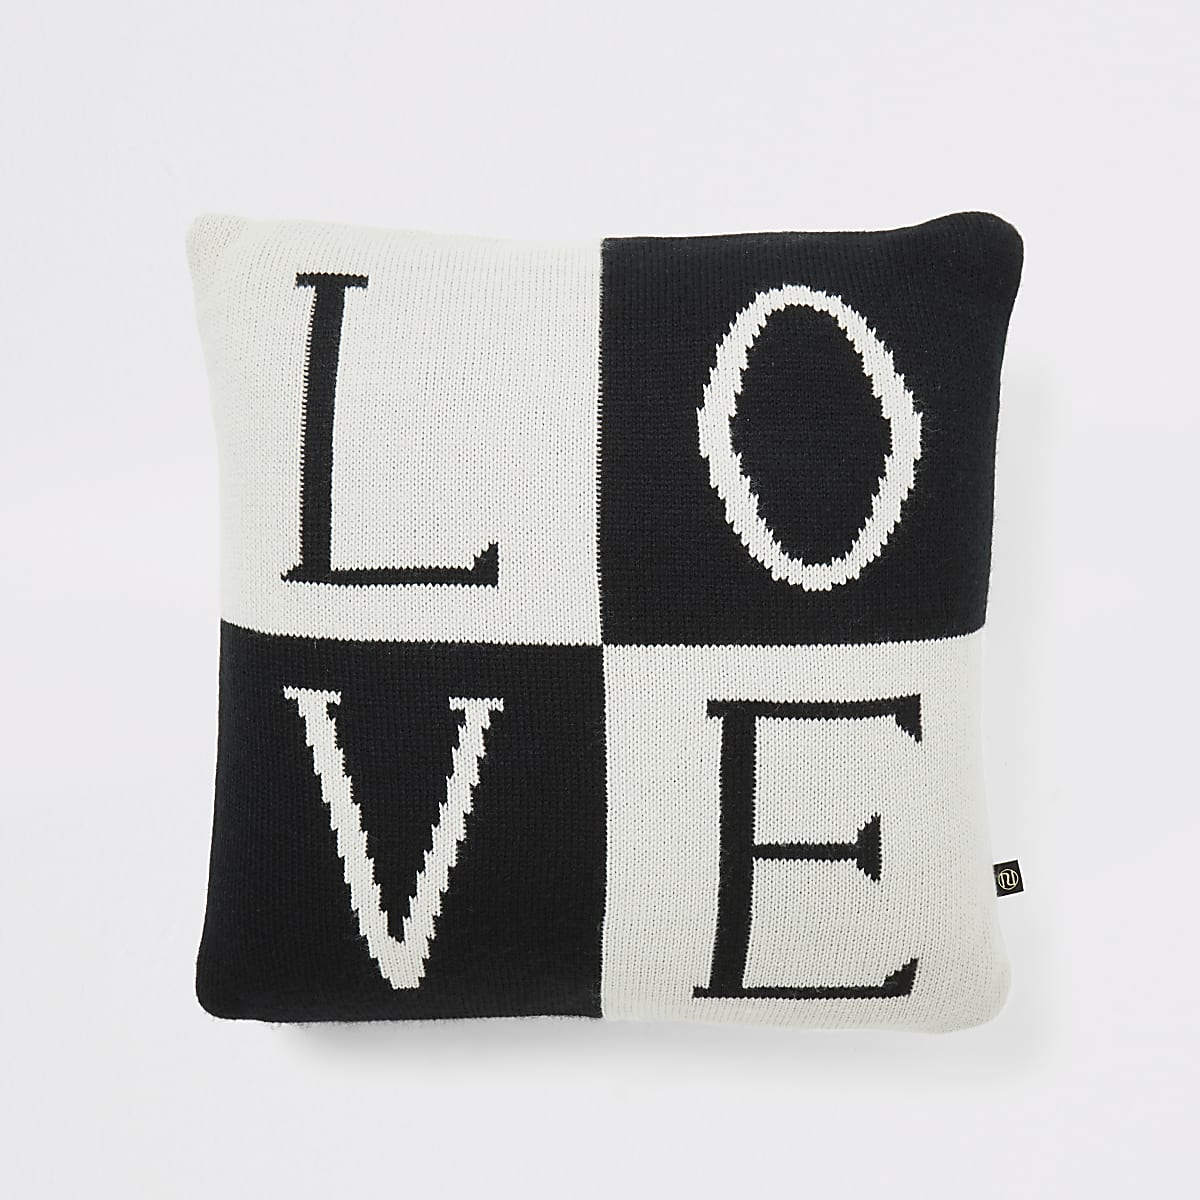 Black knitted 'Love' cushion